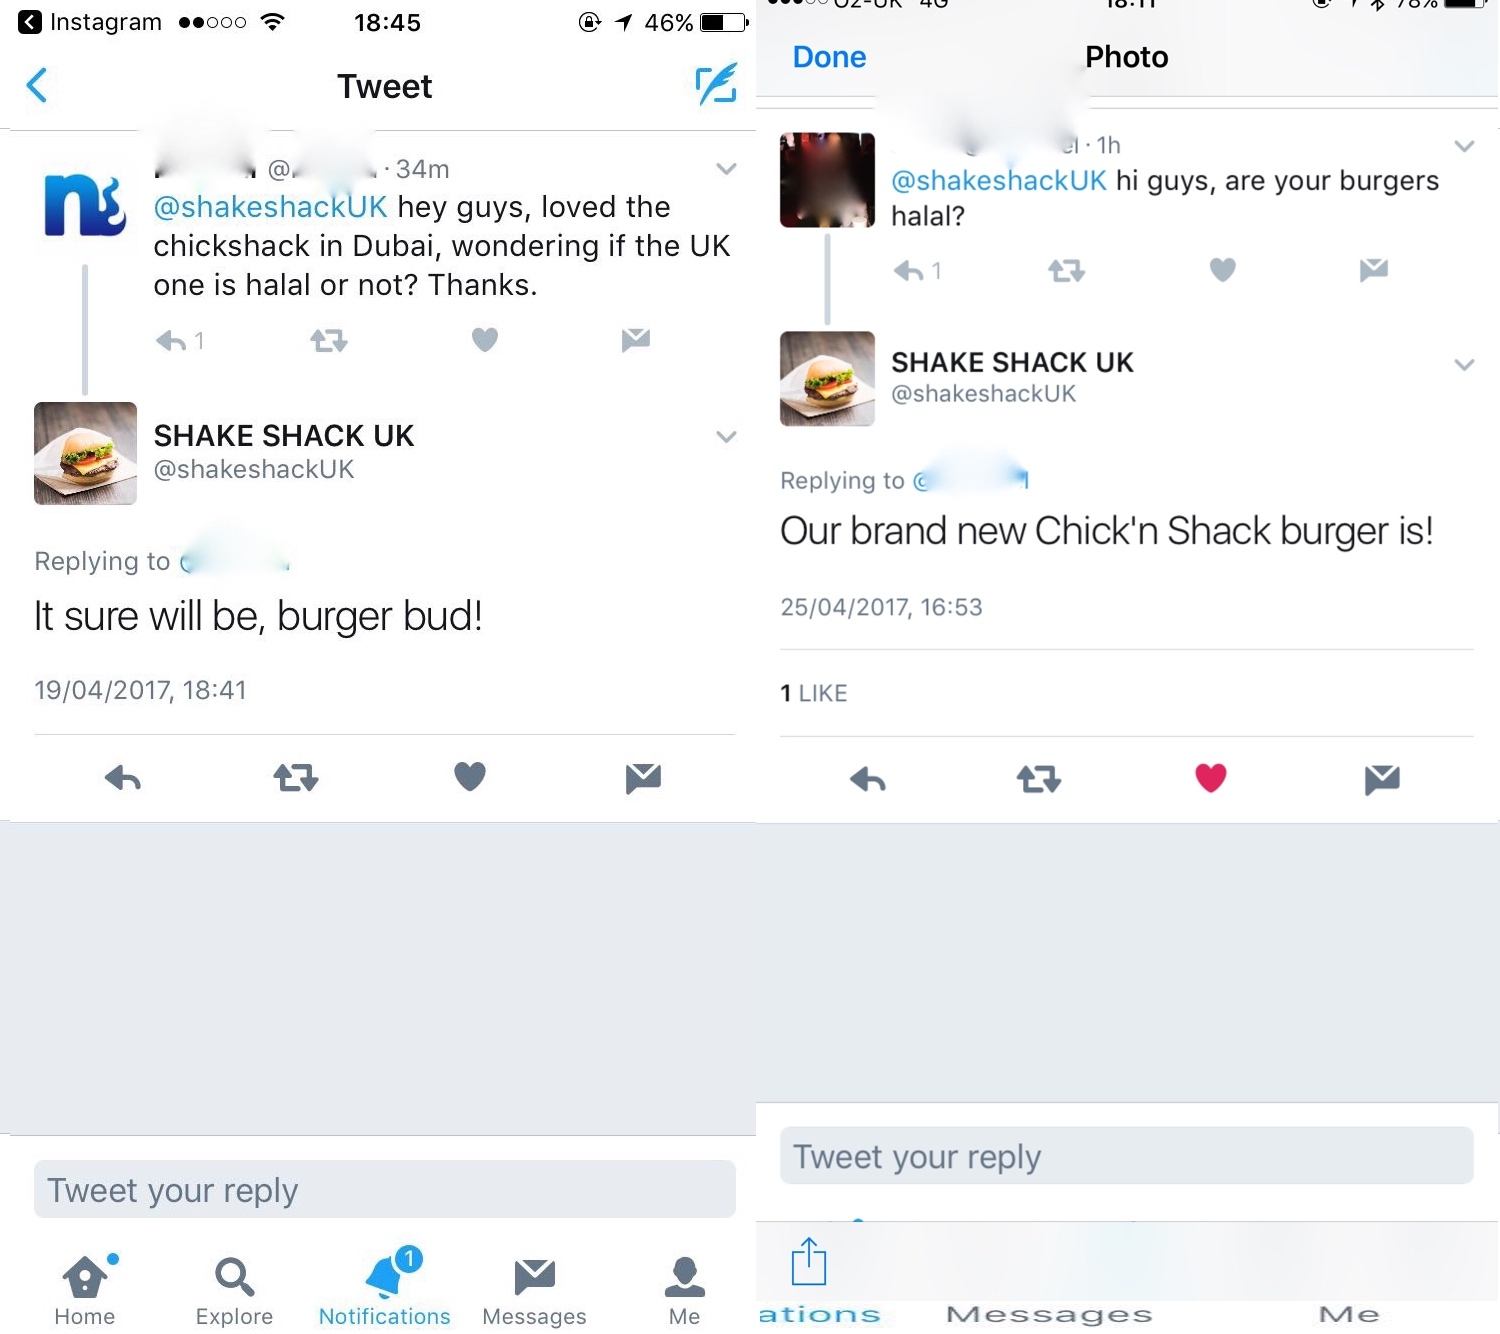 Shake Shack London is Serving Halal Chicken - Halal Girl About Town